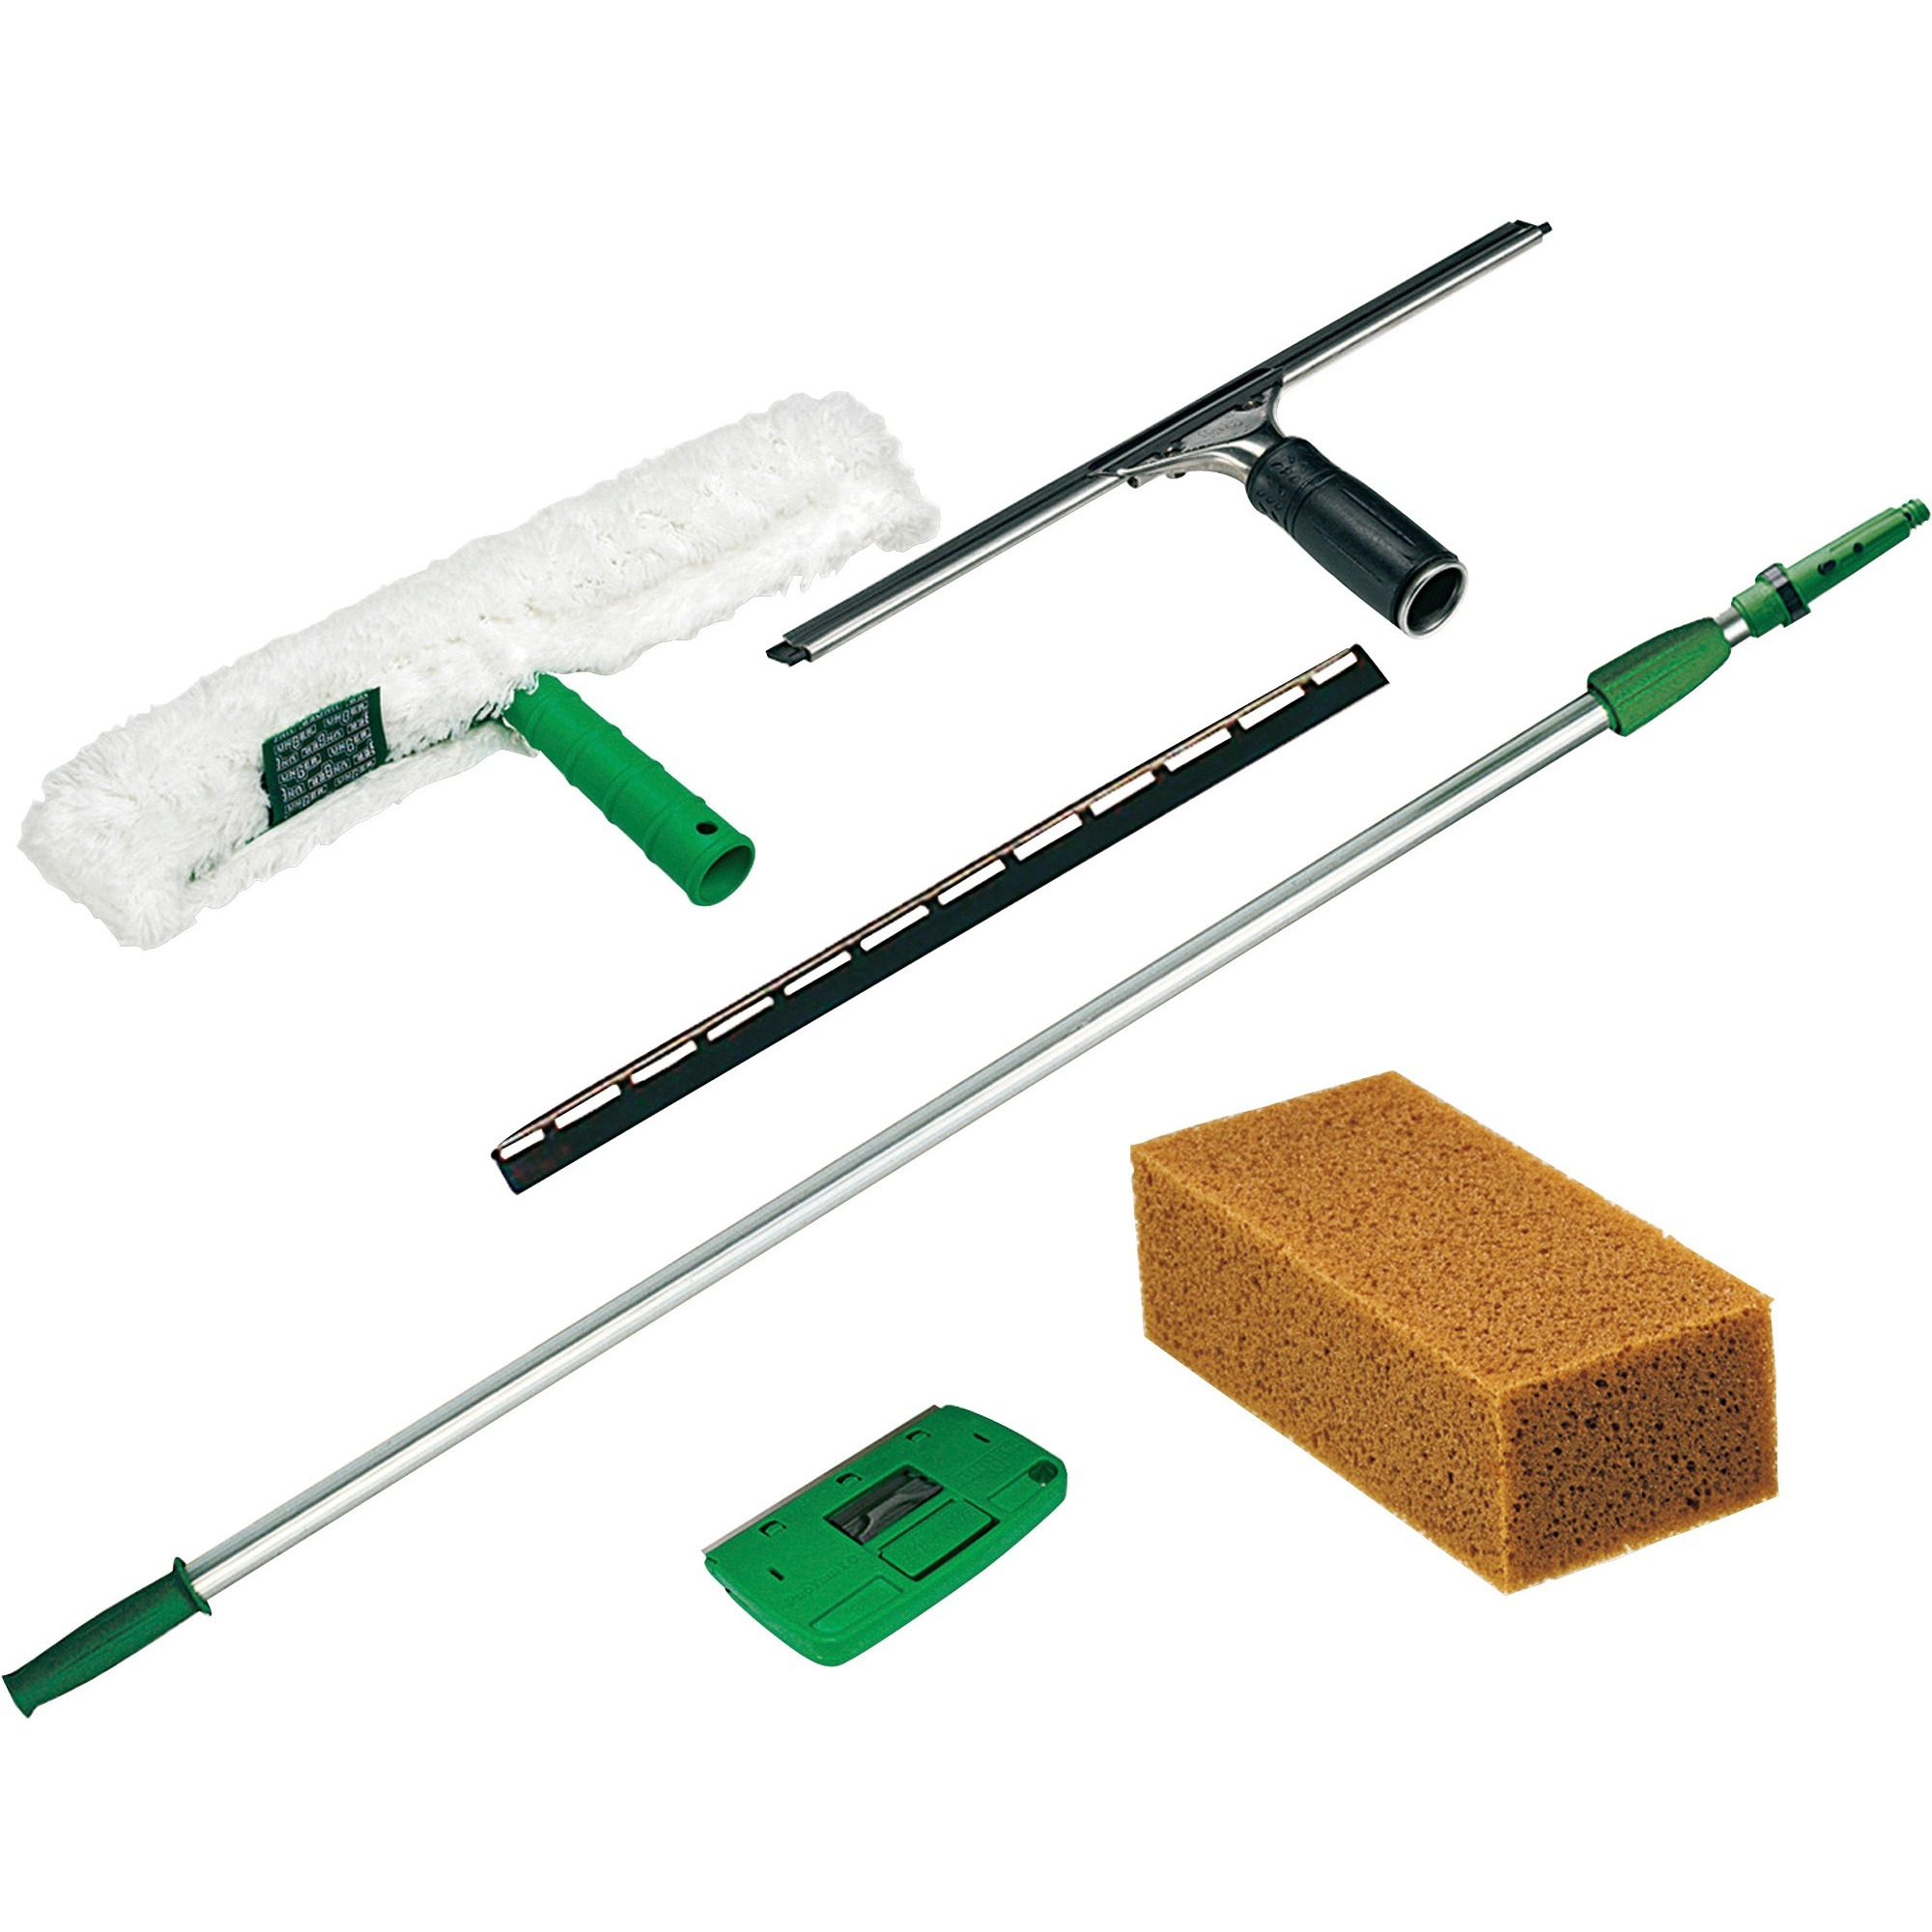 Unger, UNGPWK00, Professional Window Cleaning Kit, 1 / Kit